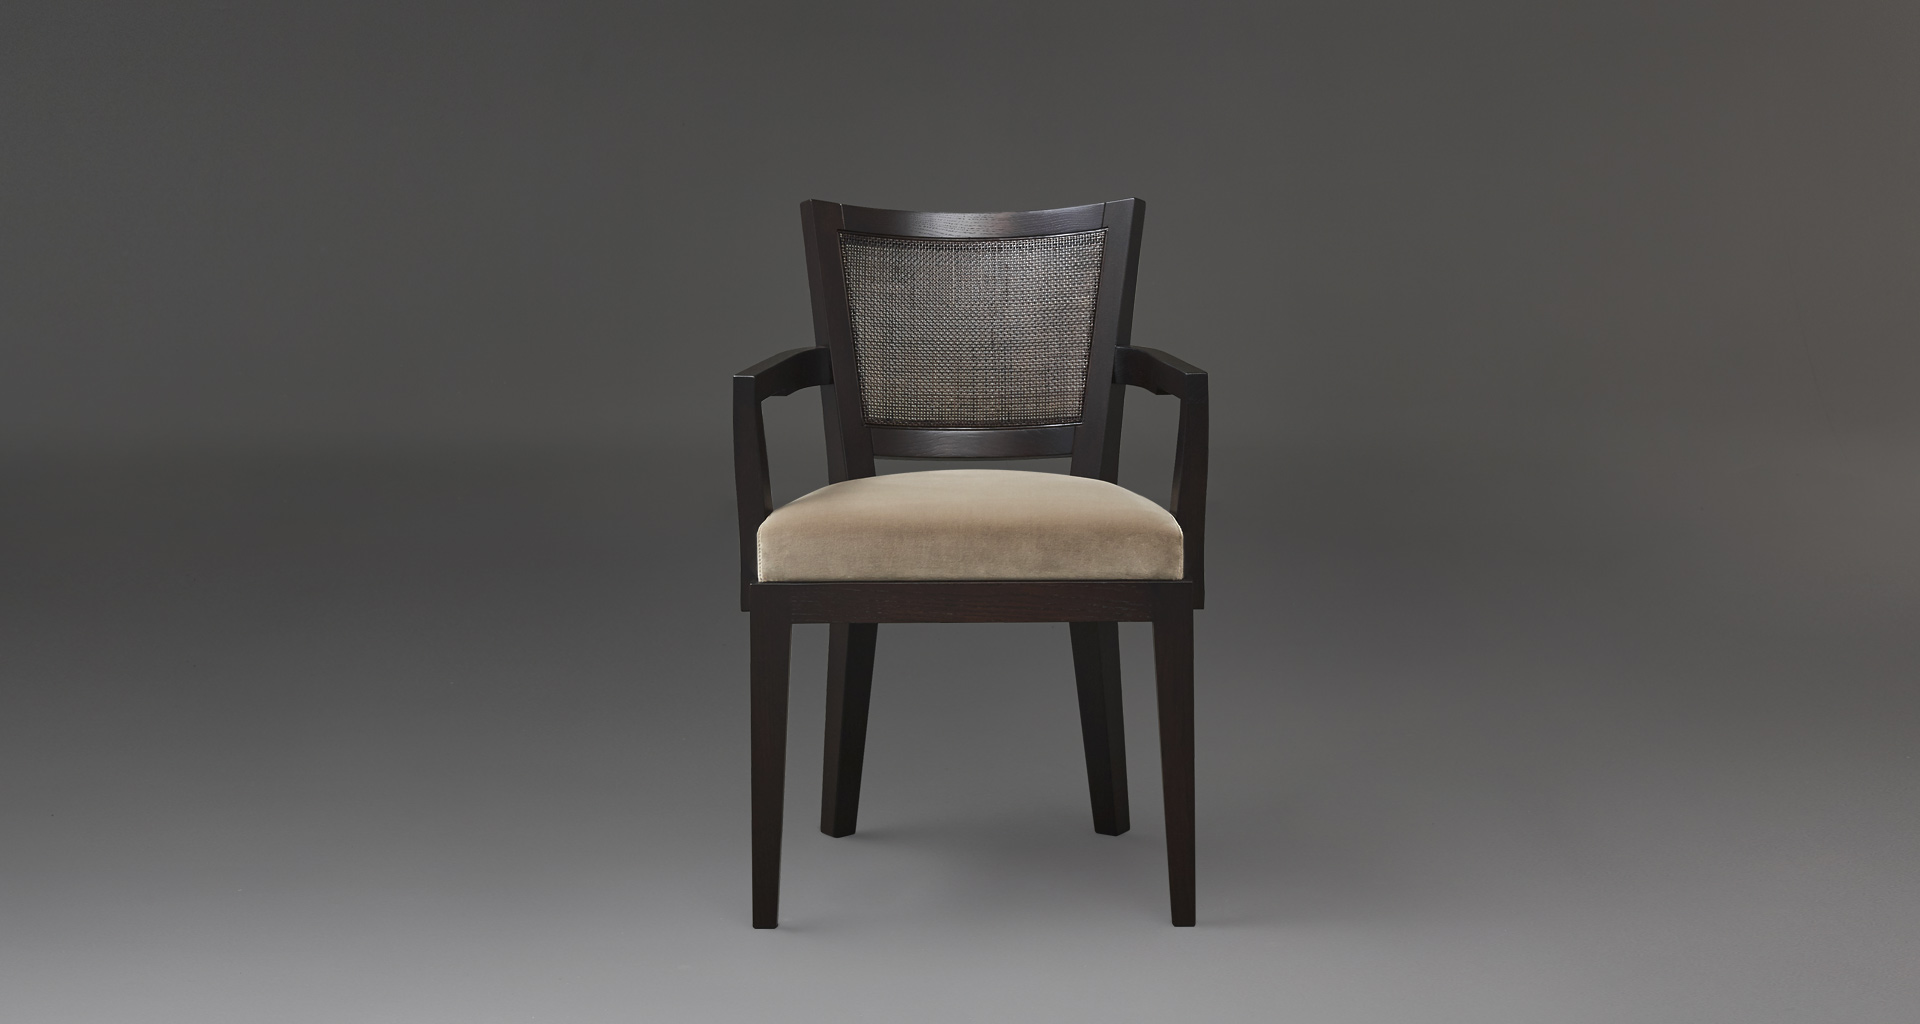 Caffè is a wooden dining chair, with straw backrest and fabric or leather seat, from Promemoria's catalogue | Promemoria